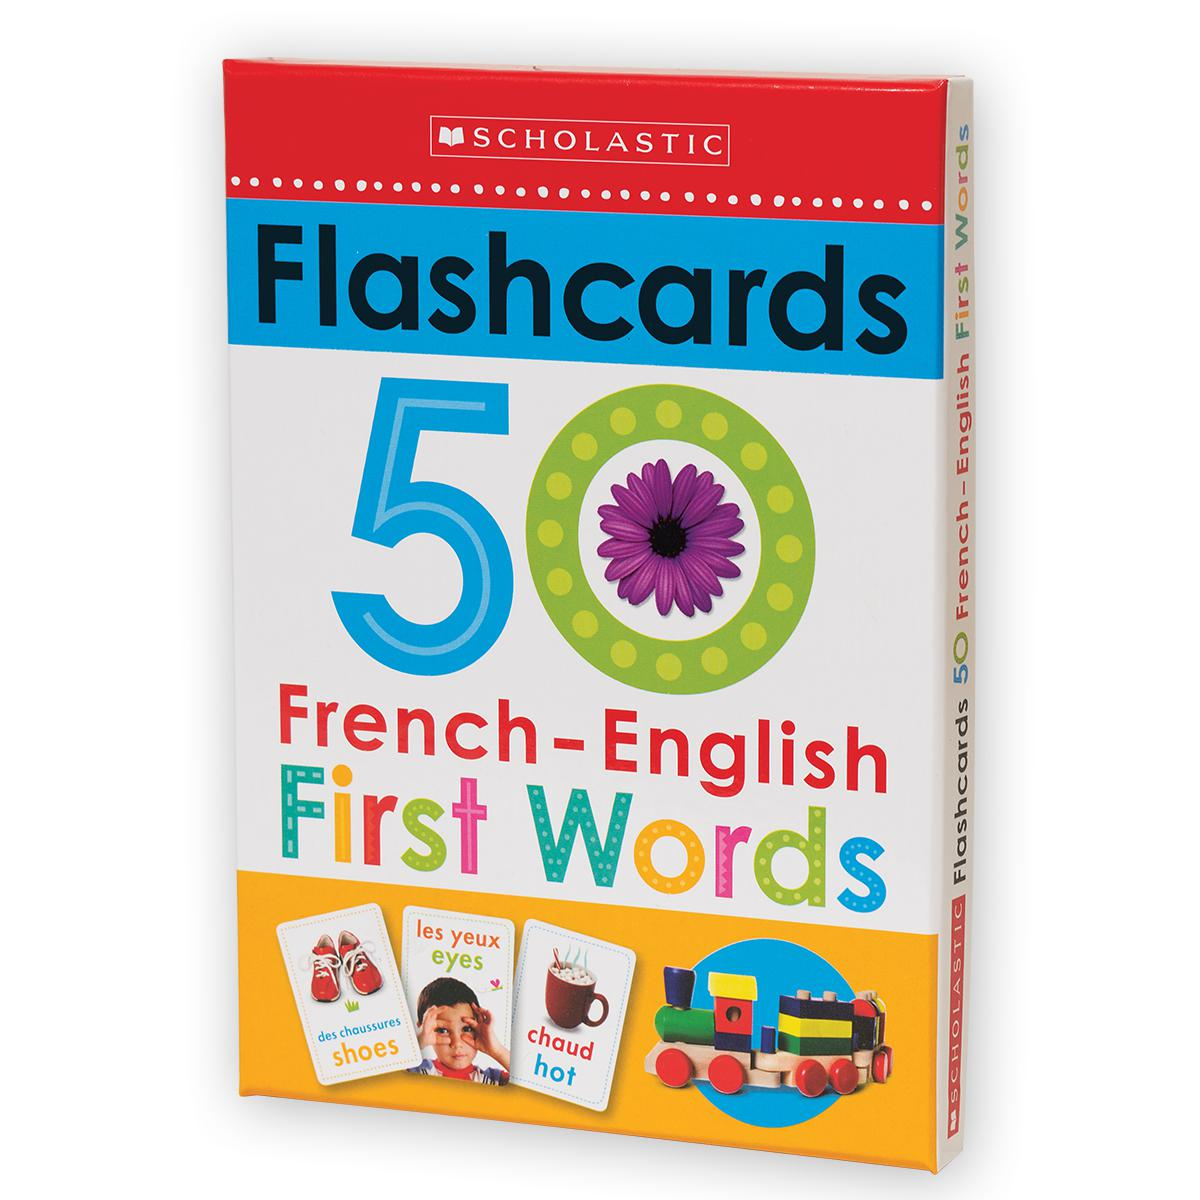 Scholastic: Flashcards: 50 French-English First Words